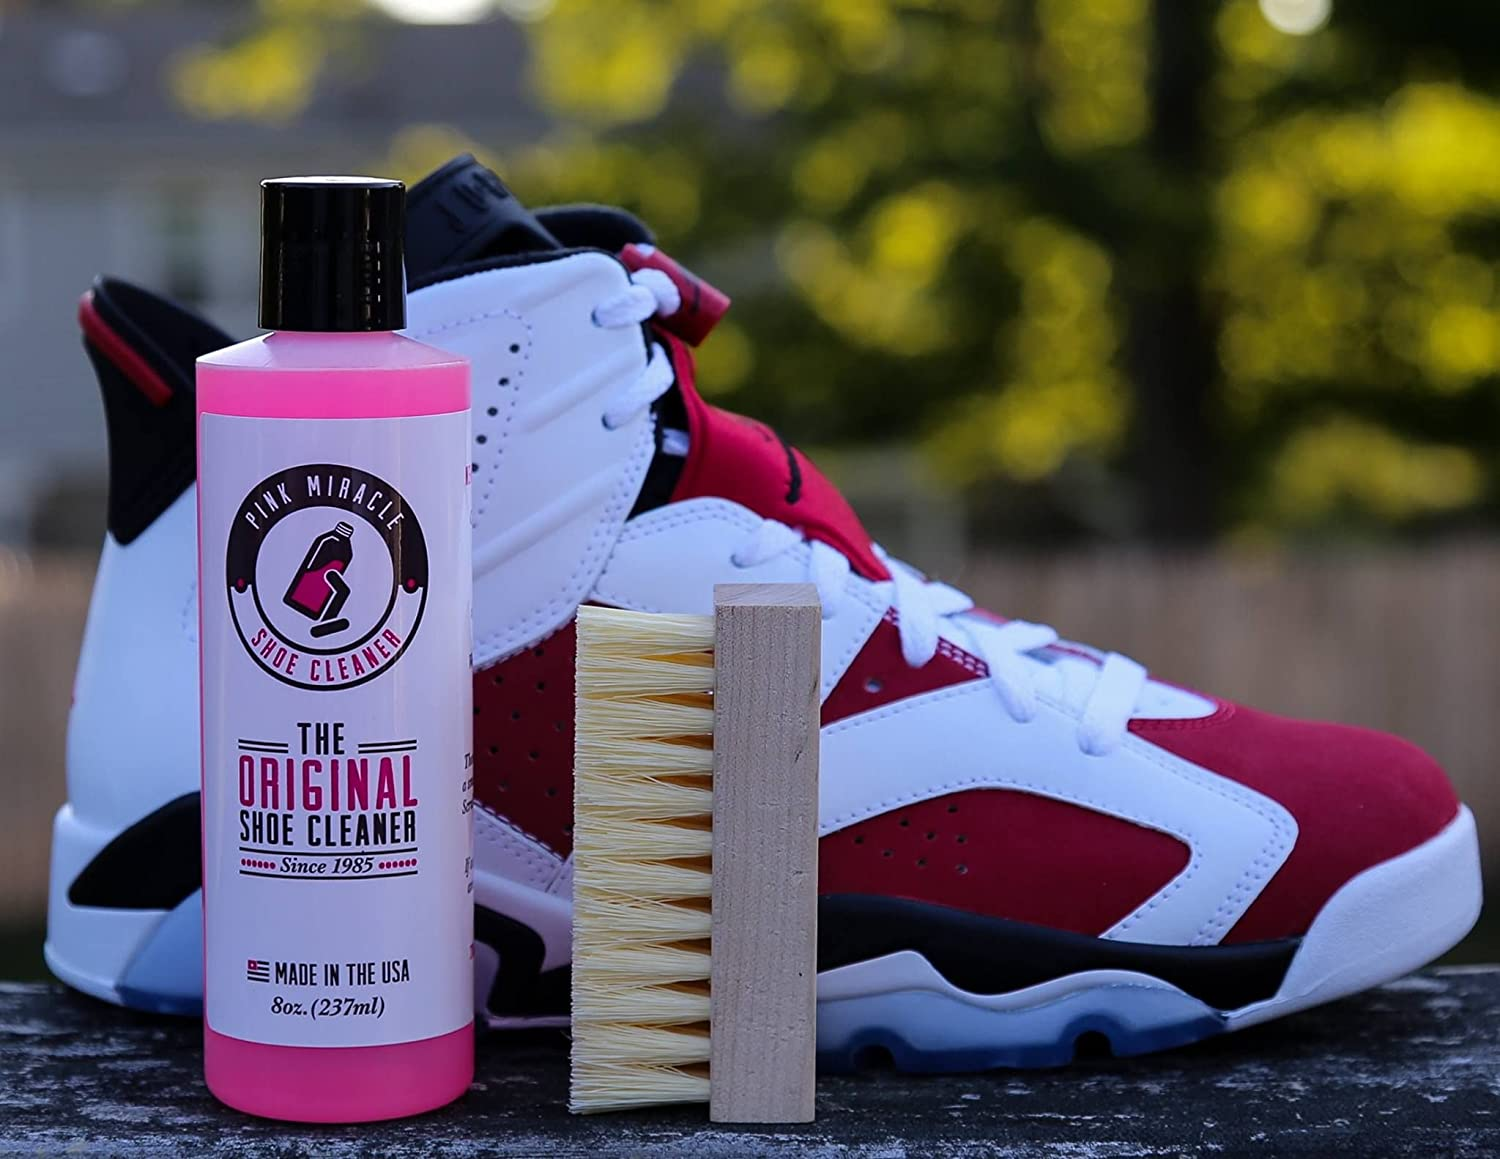 599ec0f0036 Amazon.com  Pink Miracle Shoe Cleaner Kit 8 Oz. Bottle Fabric Cleaner For  Leather